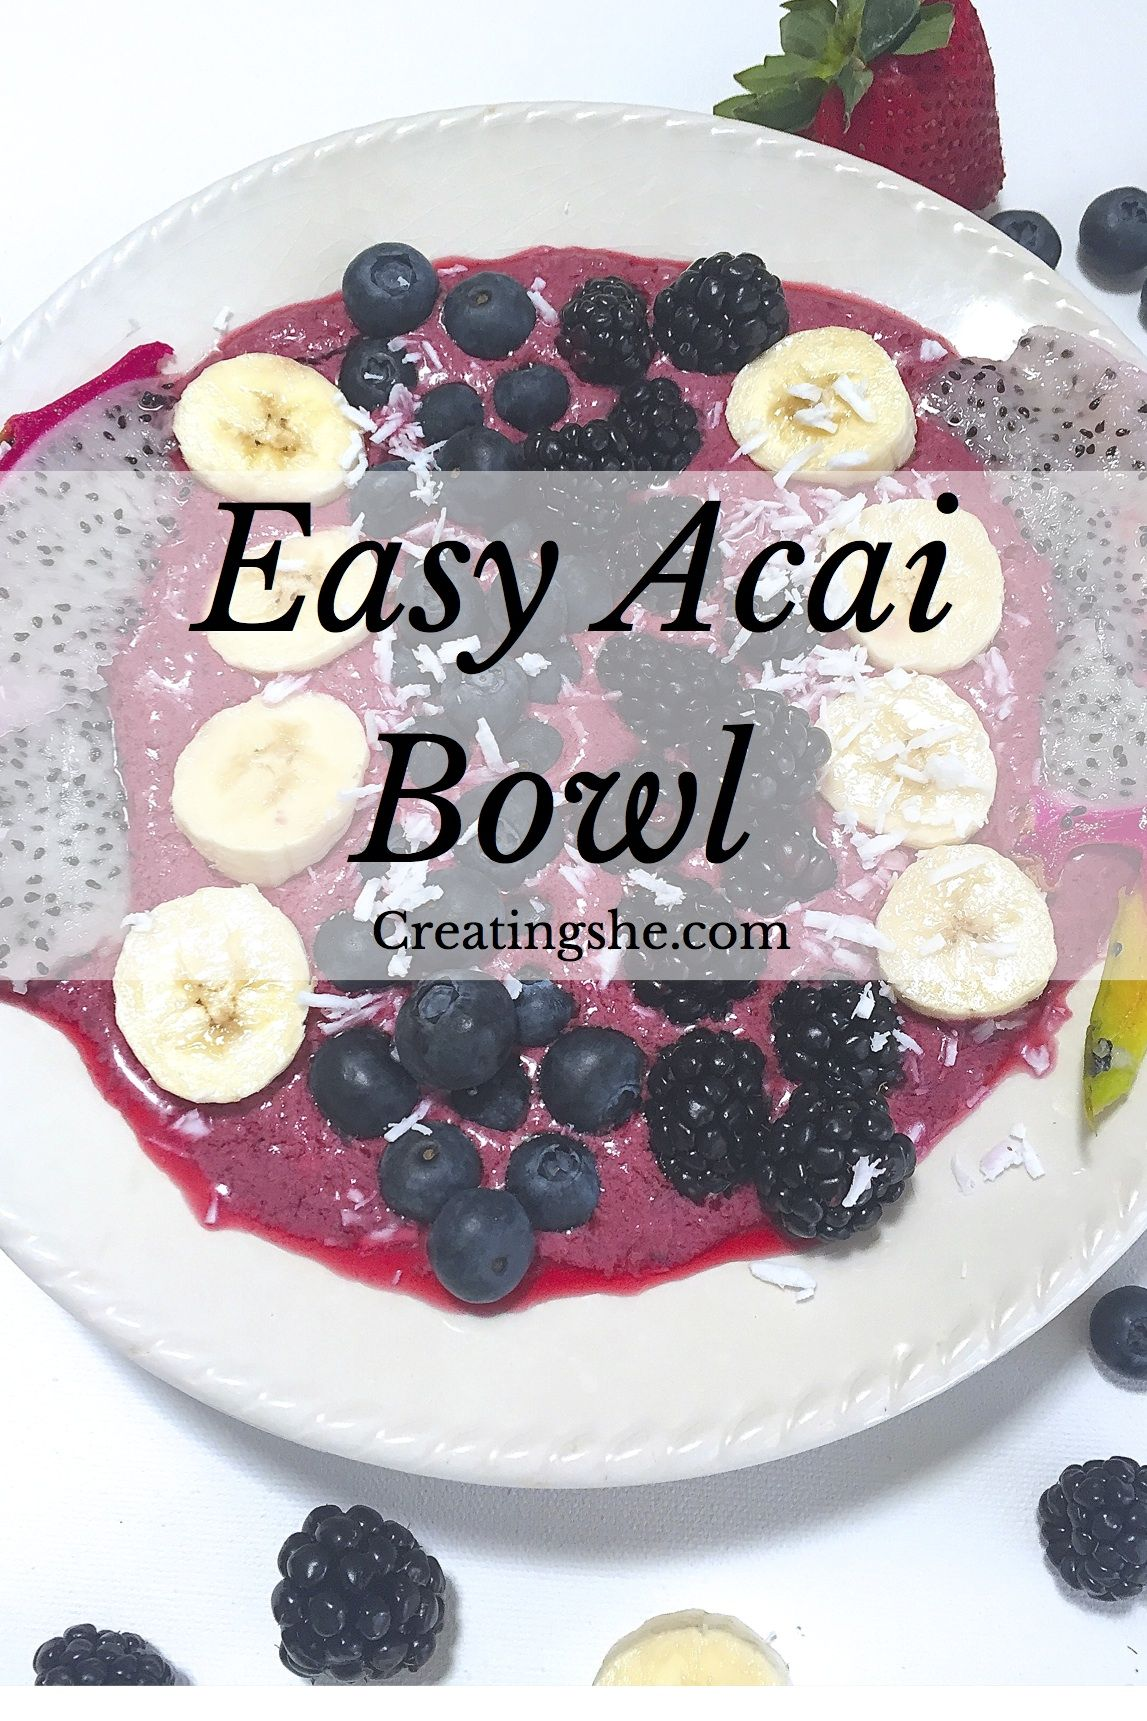 Beginners Guide to Acai Bowls! Recipe and Shopping List for the perfect healthy breakfast.